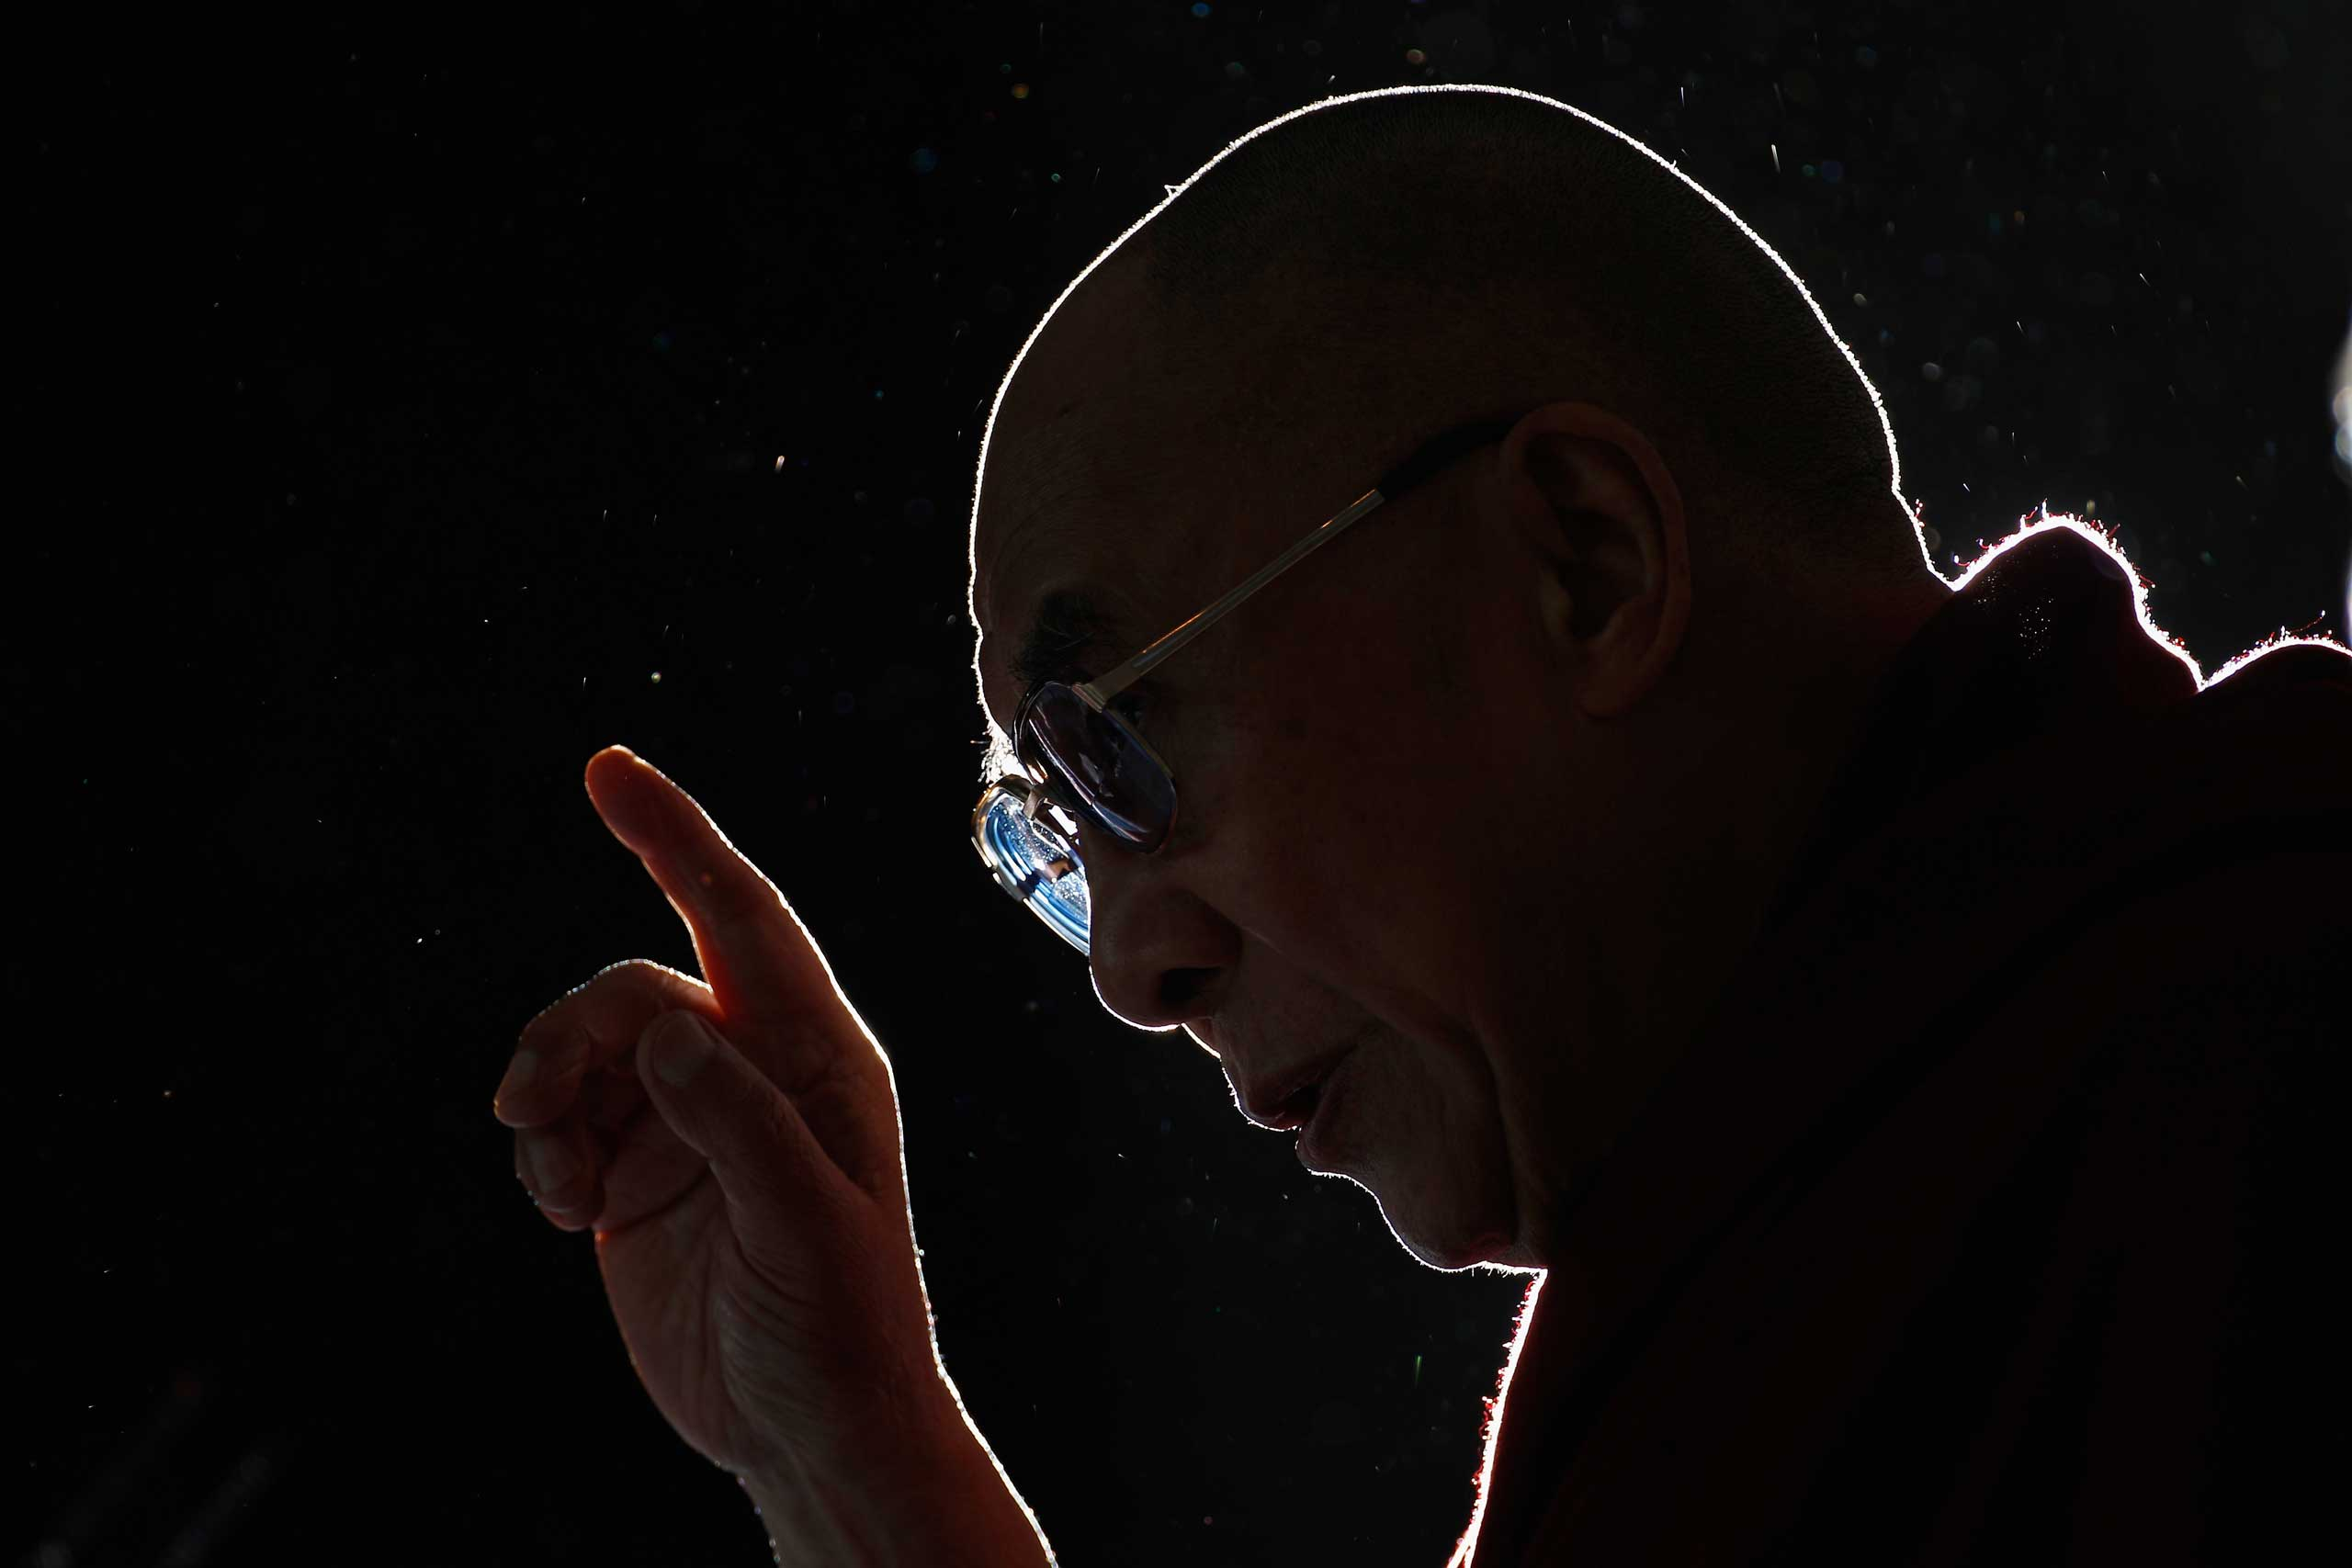 The Dalai Lama during a news conference at The Lowry Hotel in Manchester, United Kingdom, in June 2012.